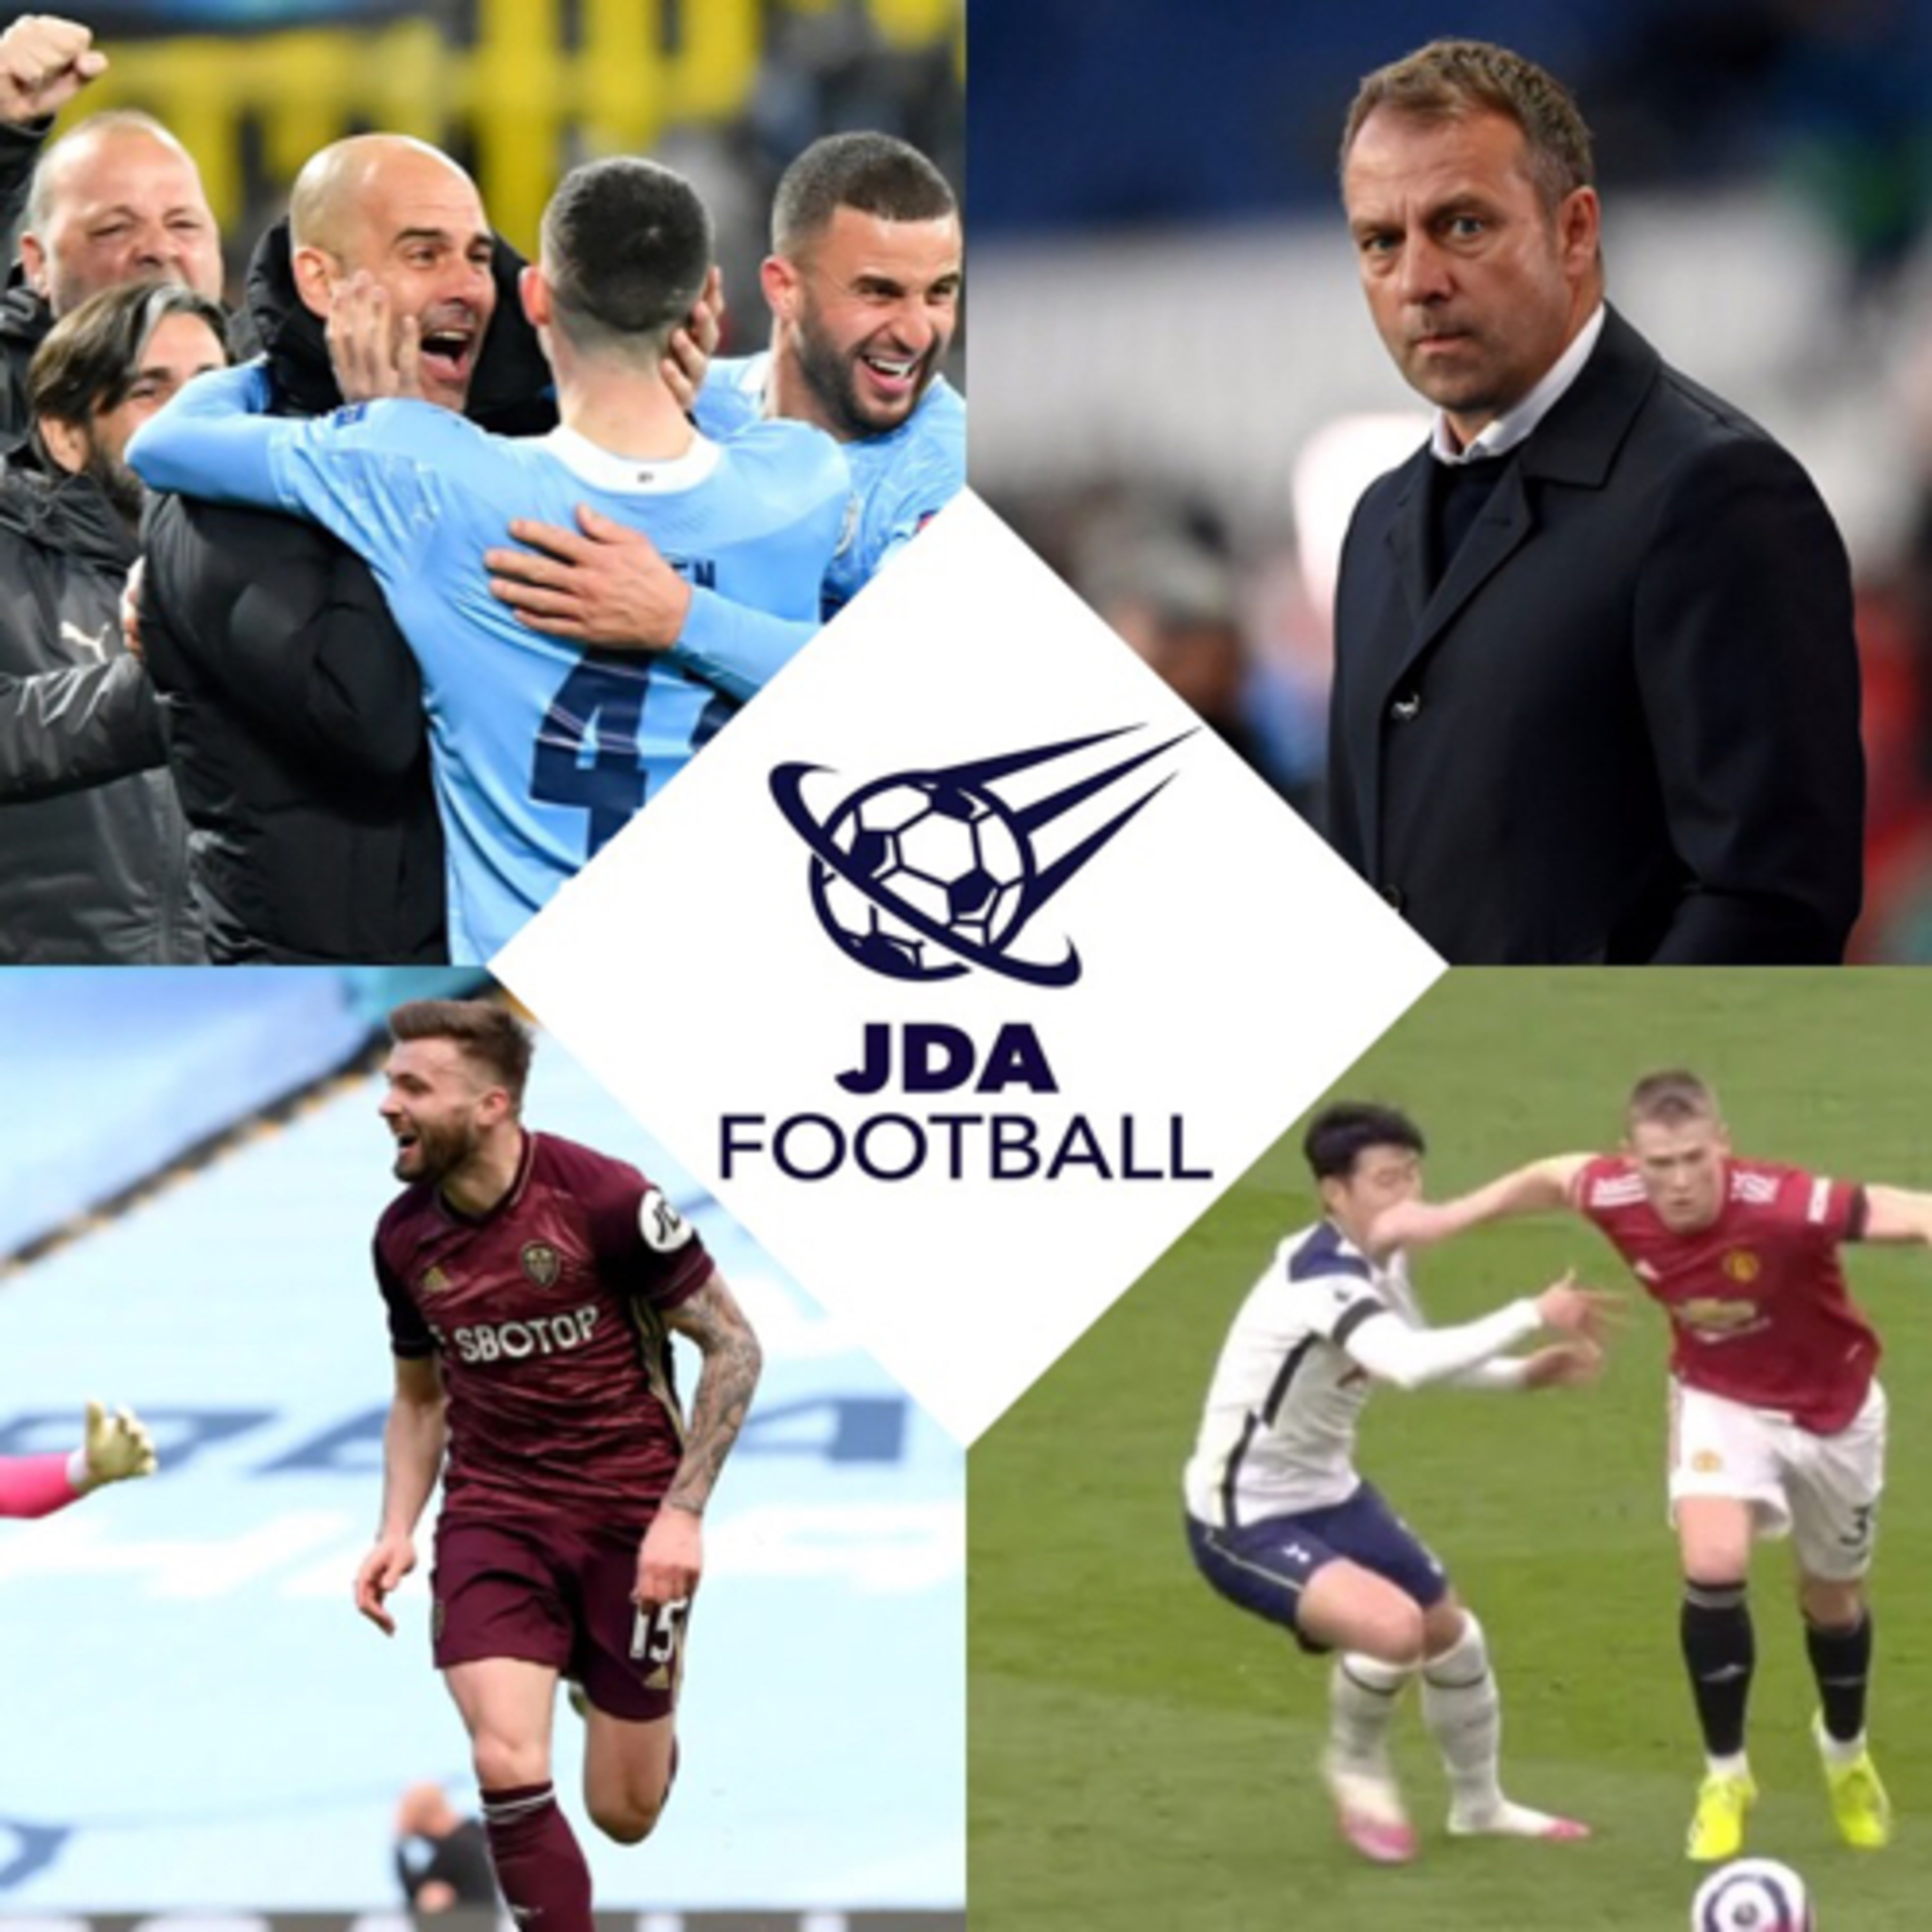 Manchester City Reach The Champions League Semifinals For The 2nd Time | JDA Football Podcast episode 31 season 2